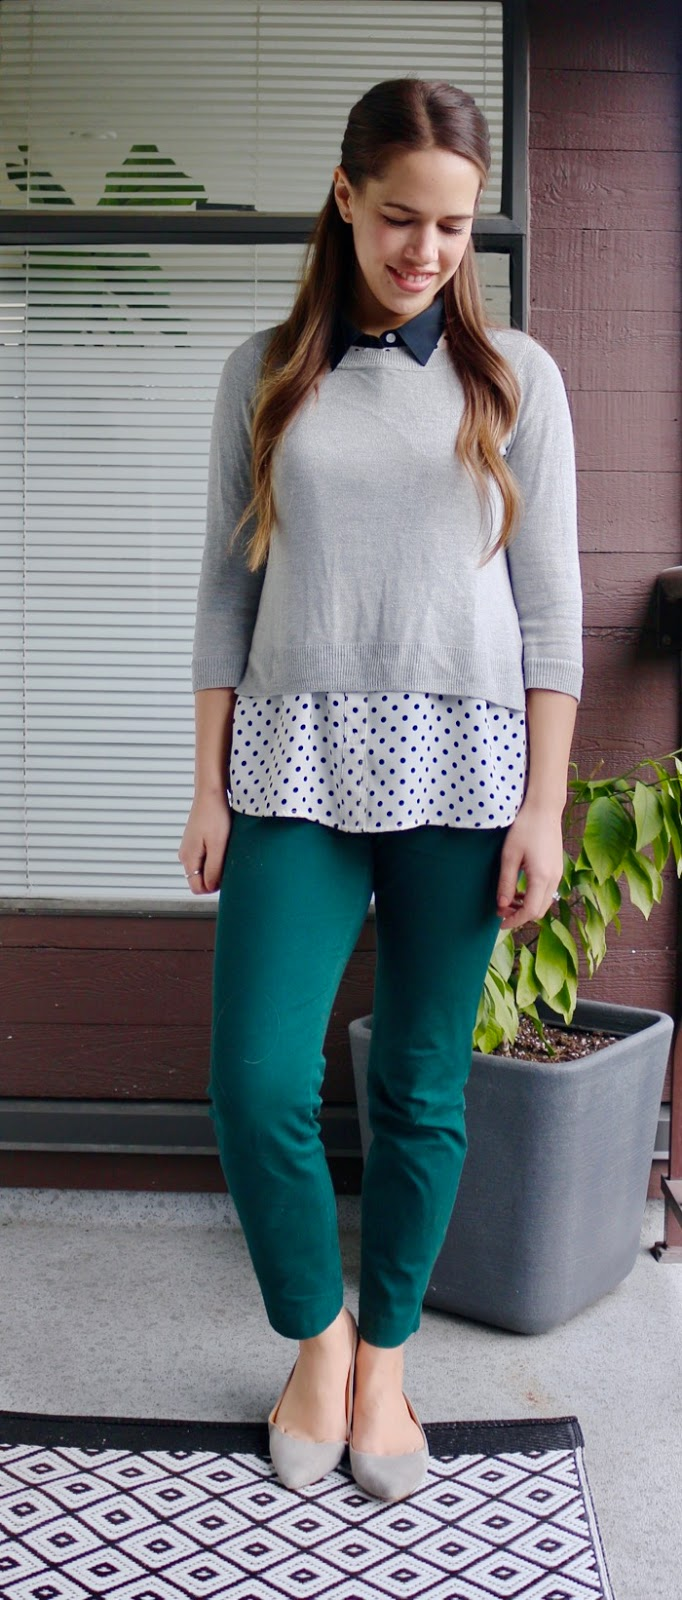 Jules in Flats - Layered Tops with Coloured Ankle Pants Look for Work